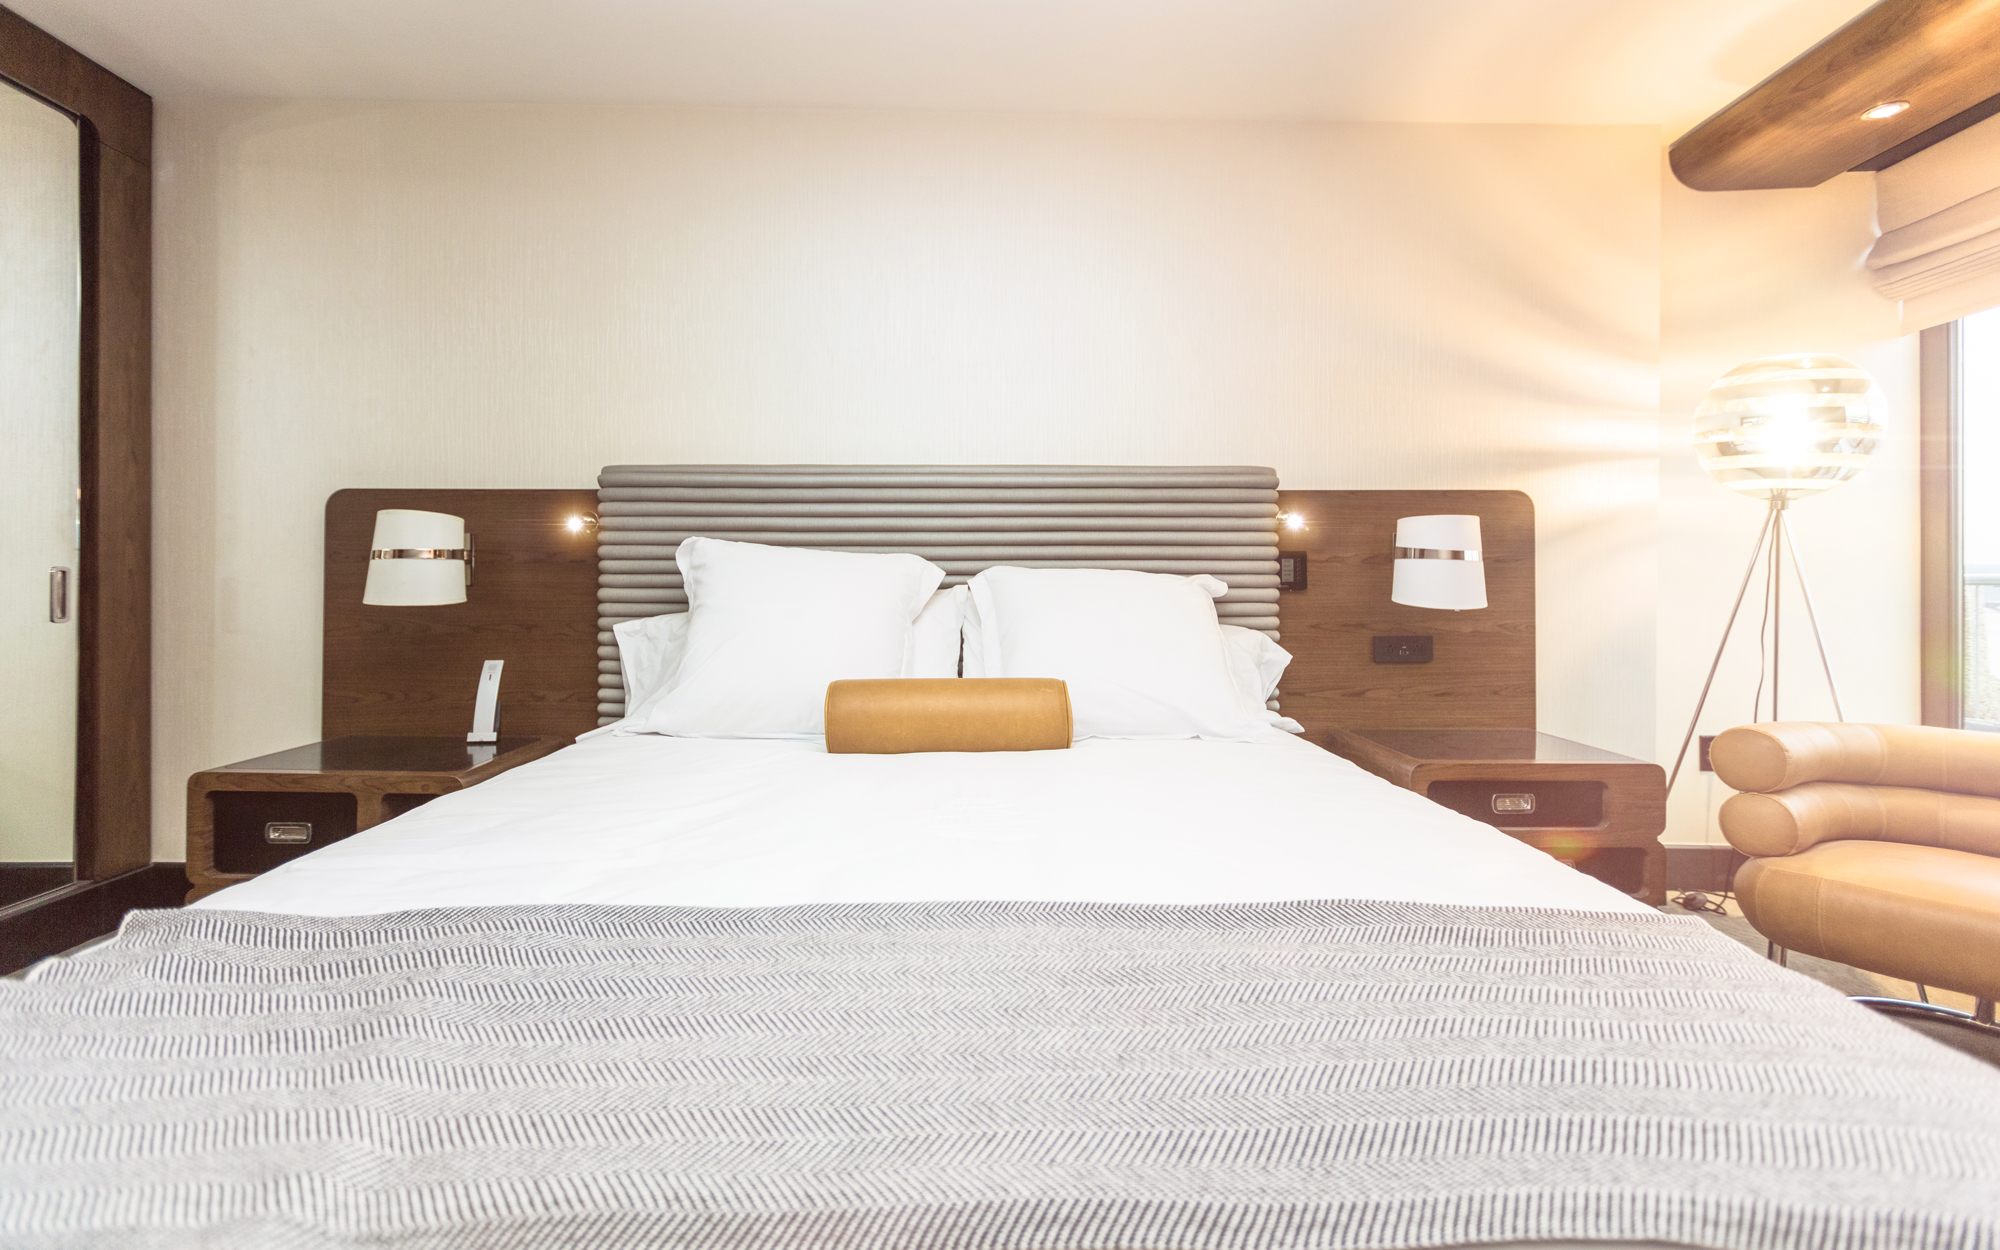 Watergate Hotel Re-opens